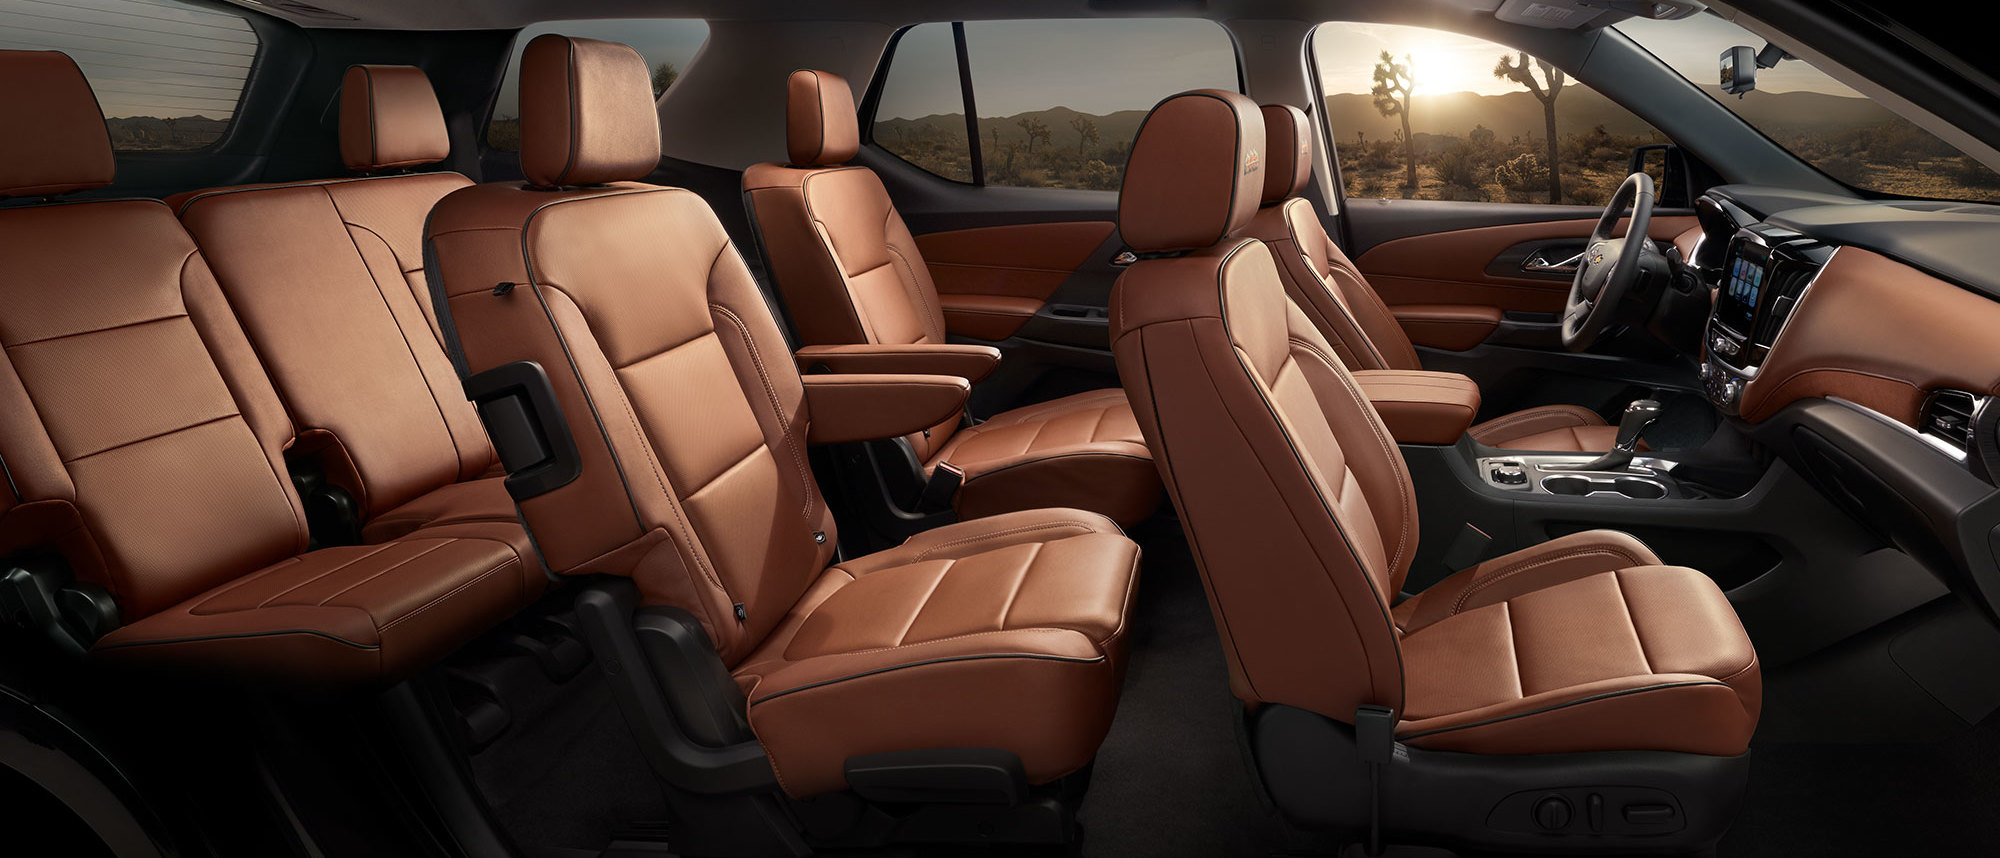 The Well-Secured Cabin of the 2020 Traverse